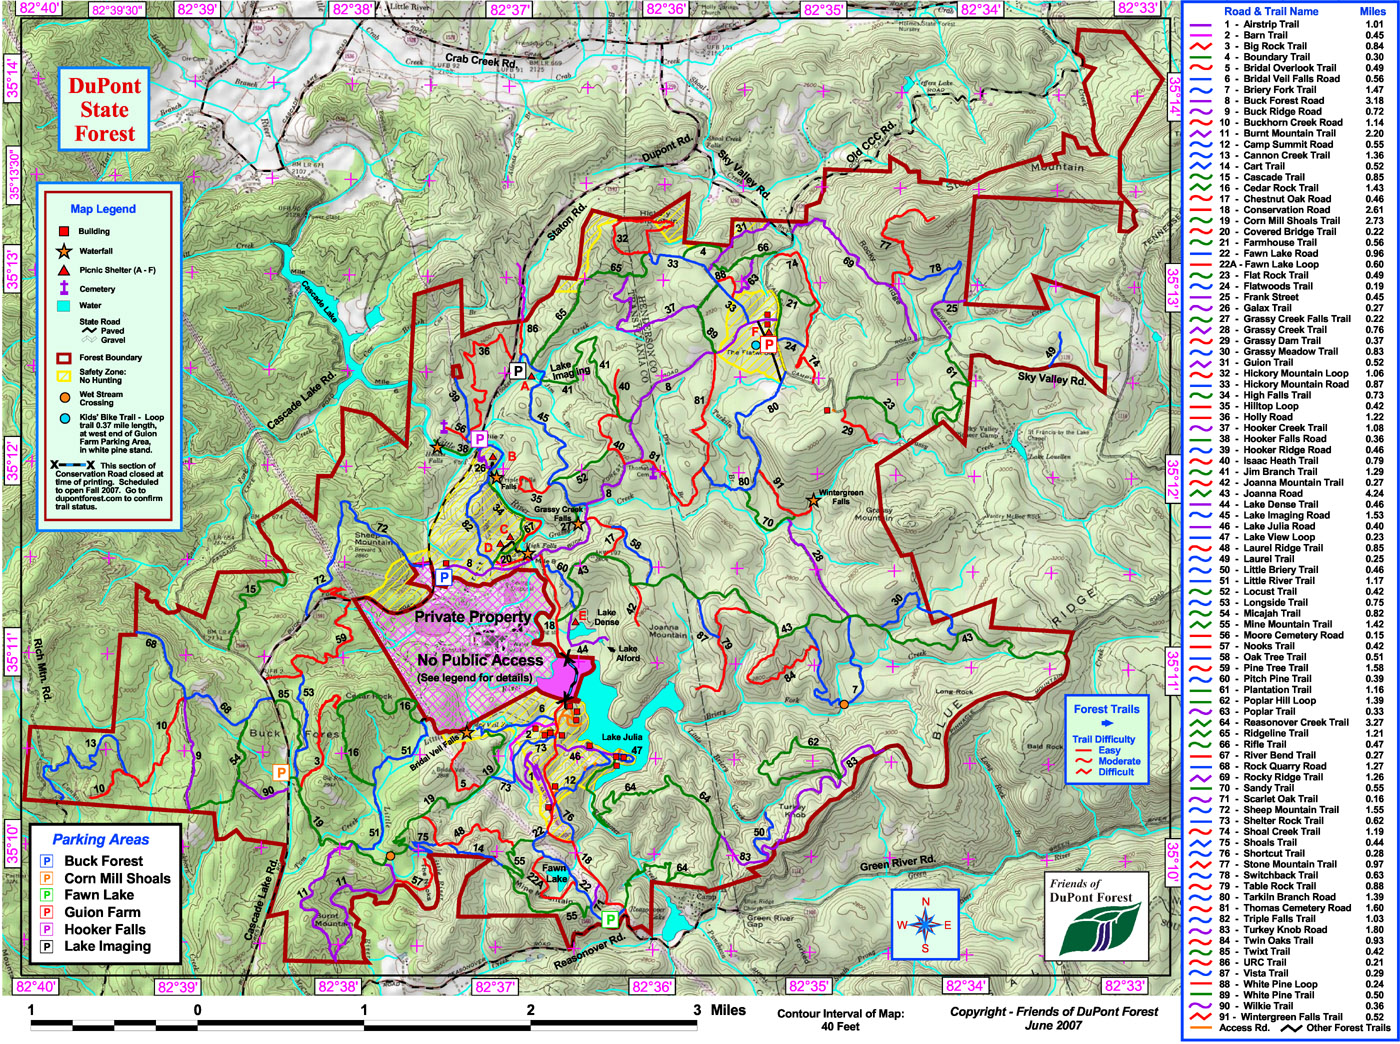 Hickory Mountain 10k Trail Race – September 18, 2010 – DuPont State on